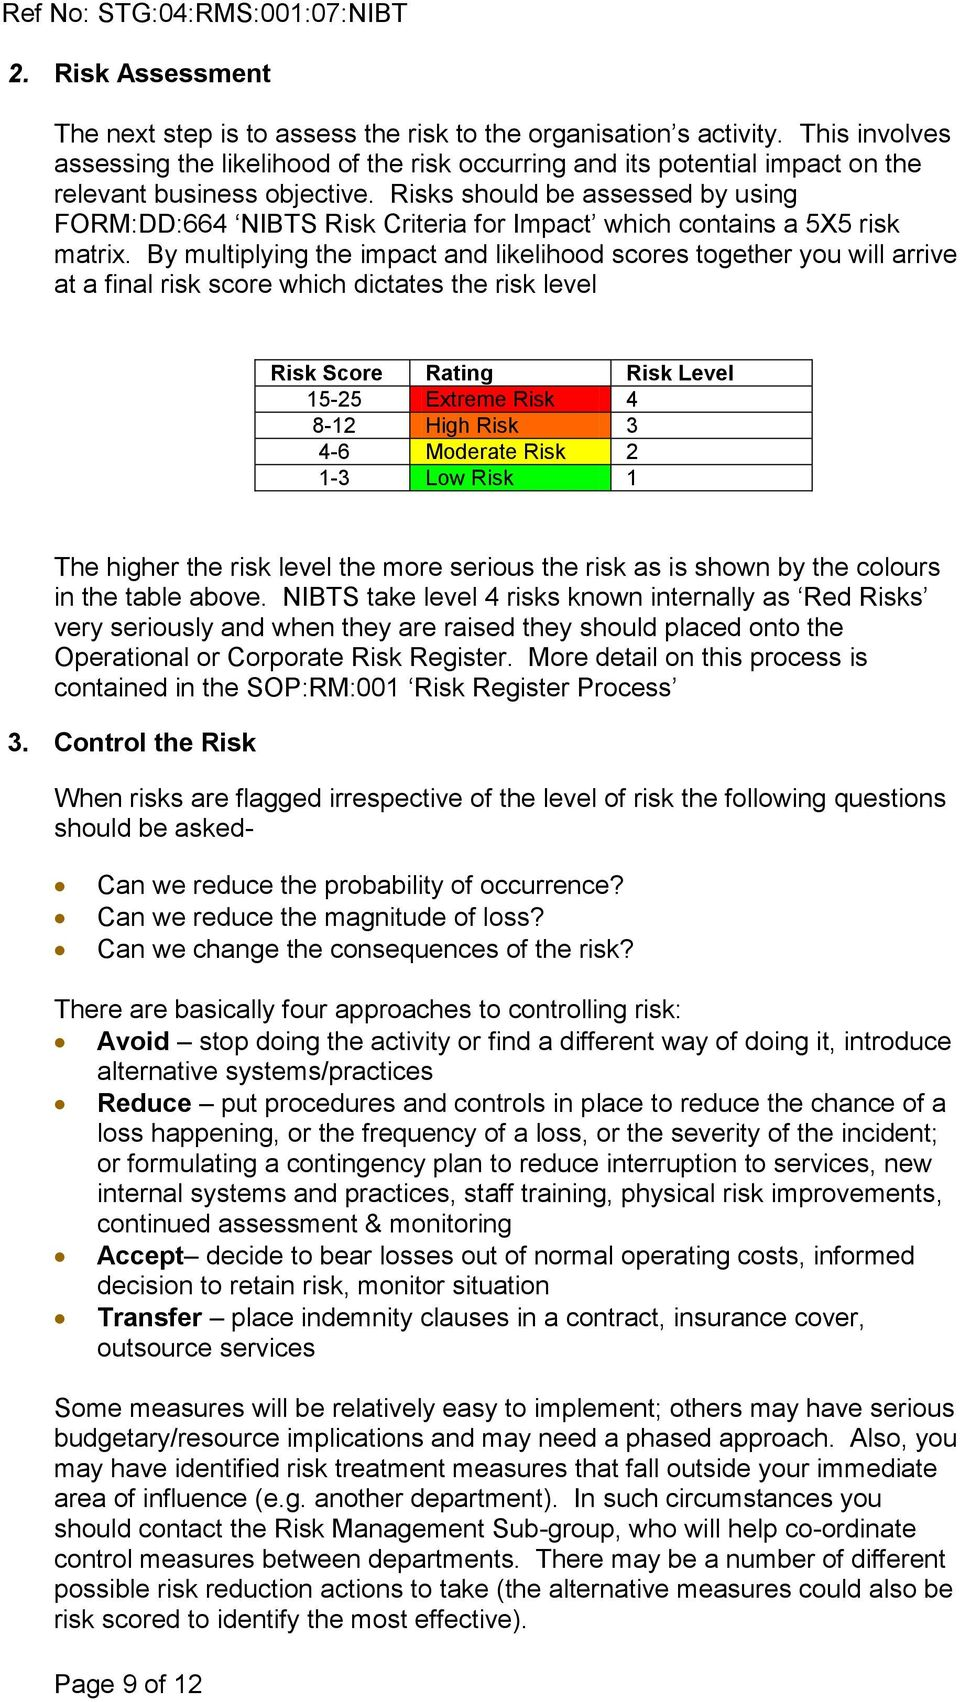 Risks should be assessed by using FORM:DD:664 NIBTS Risk Criteria for Impact which contains a 5X5 risk matrix.